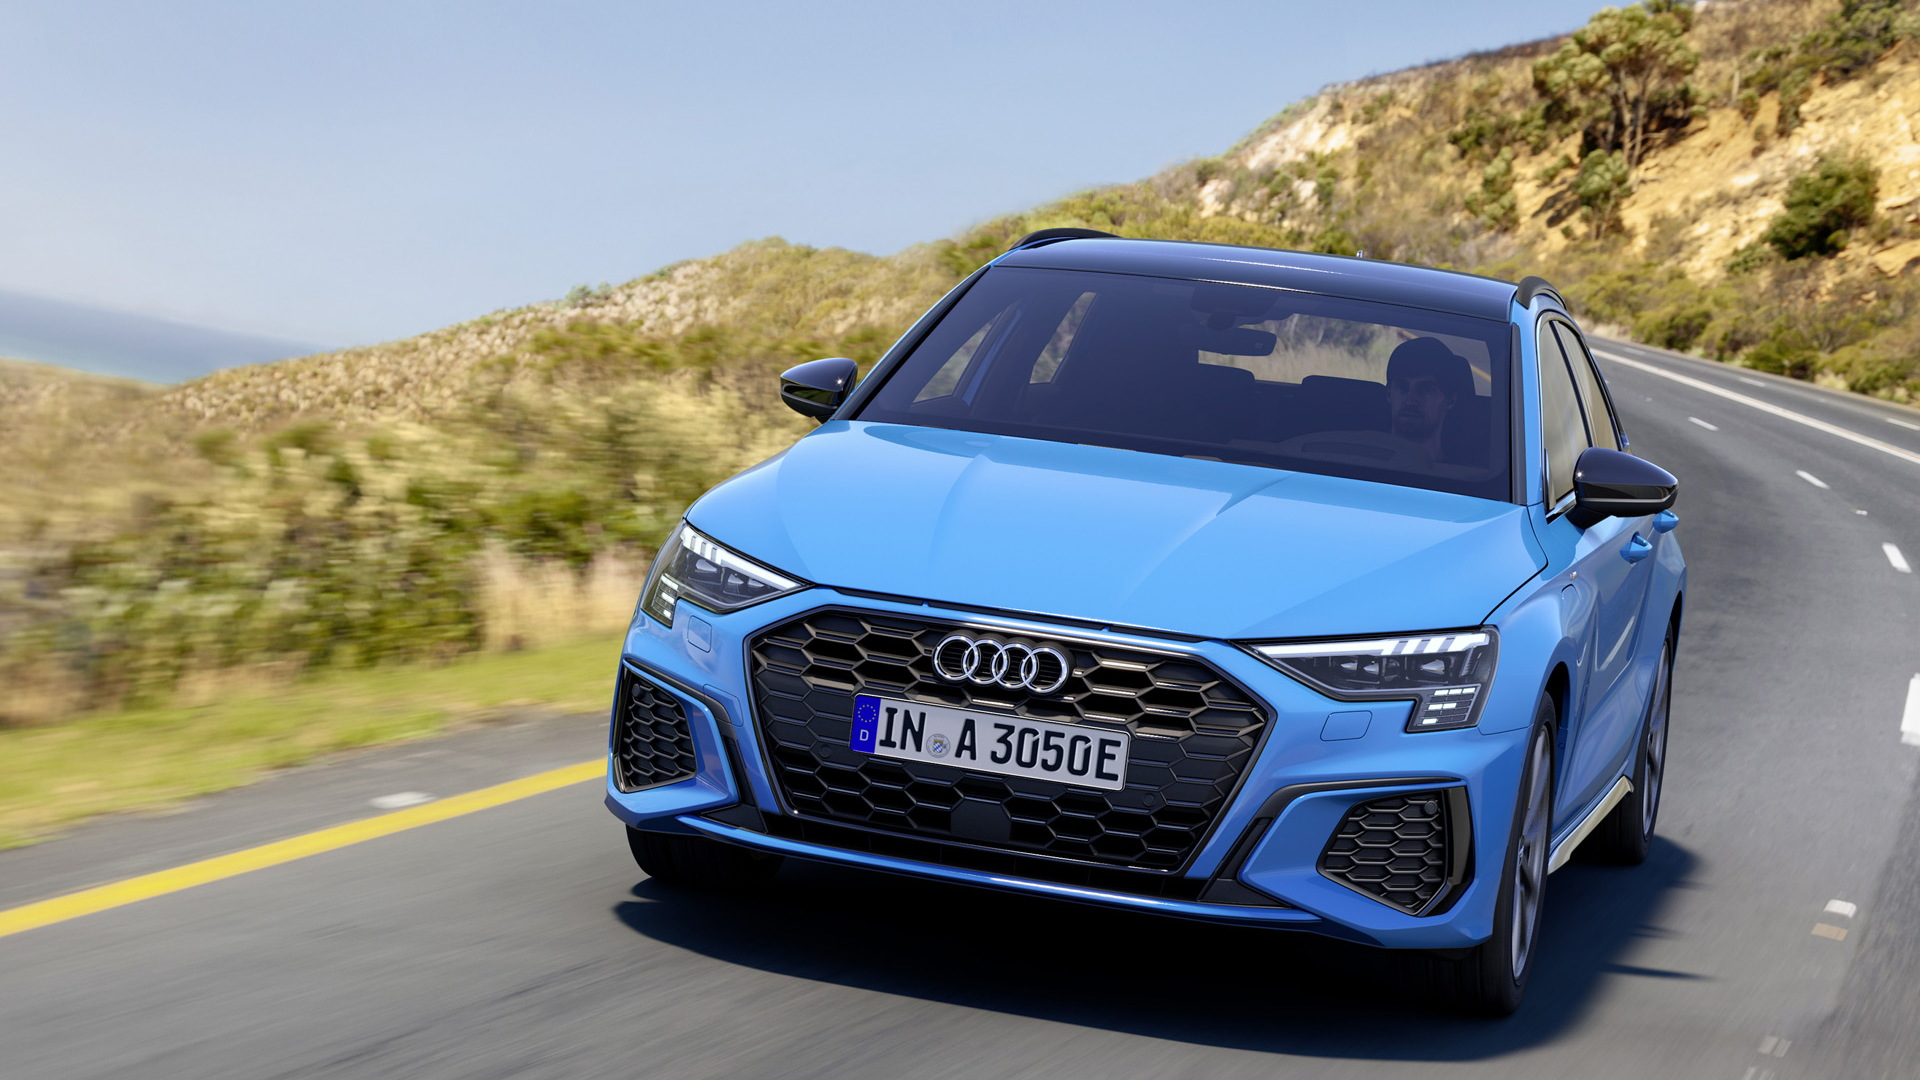 2022 Audi A3 Sportback Plug In Hybrid Revealed With 13 Kwh Battery